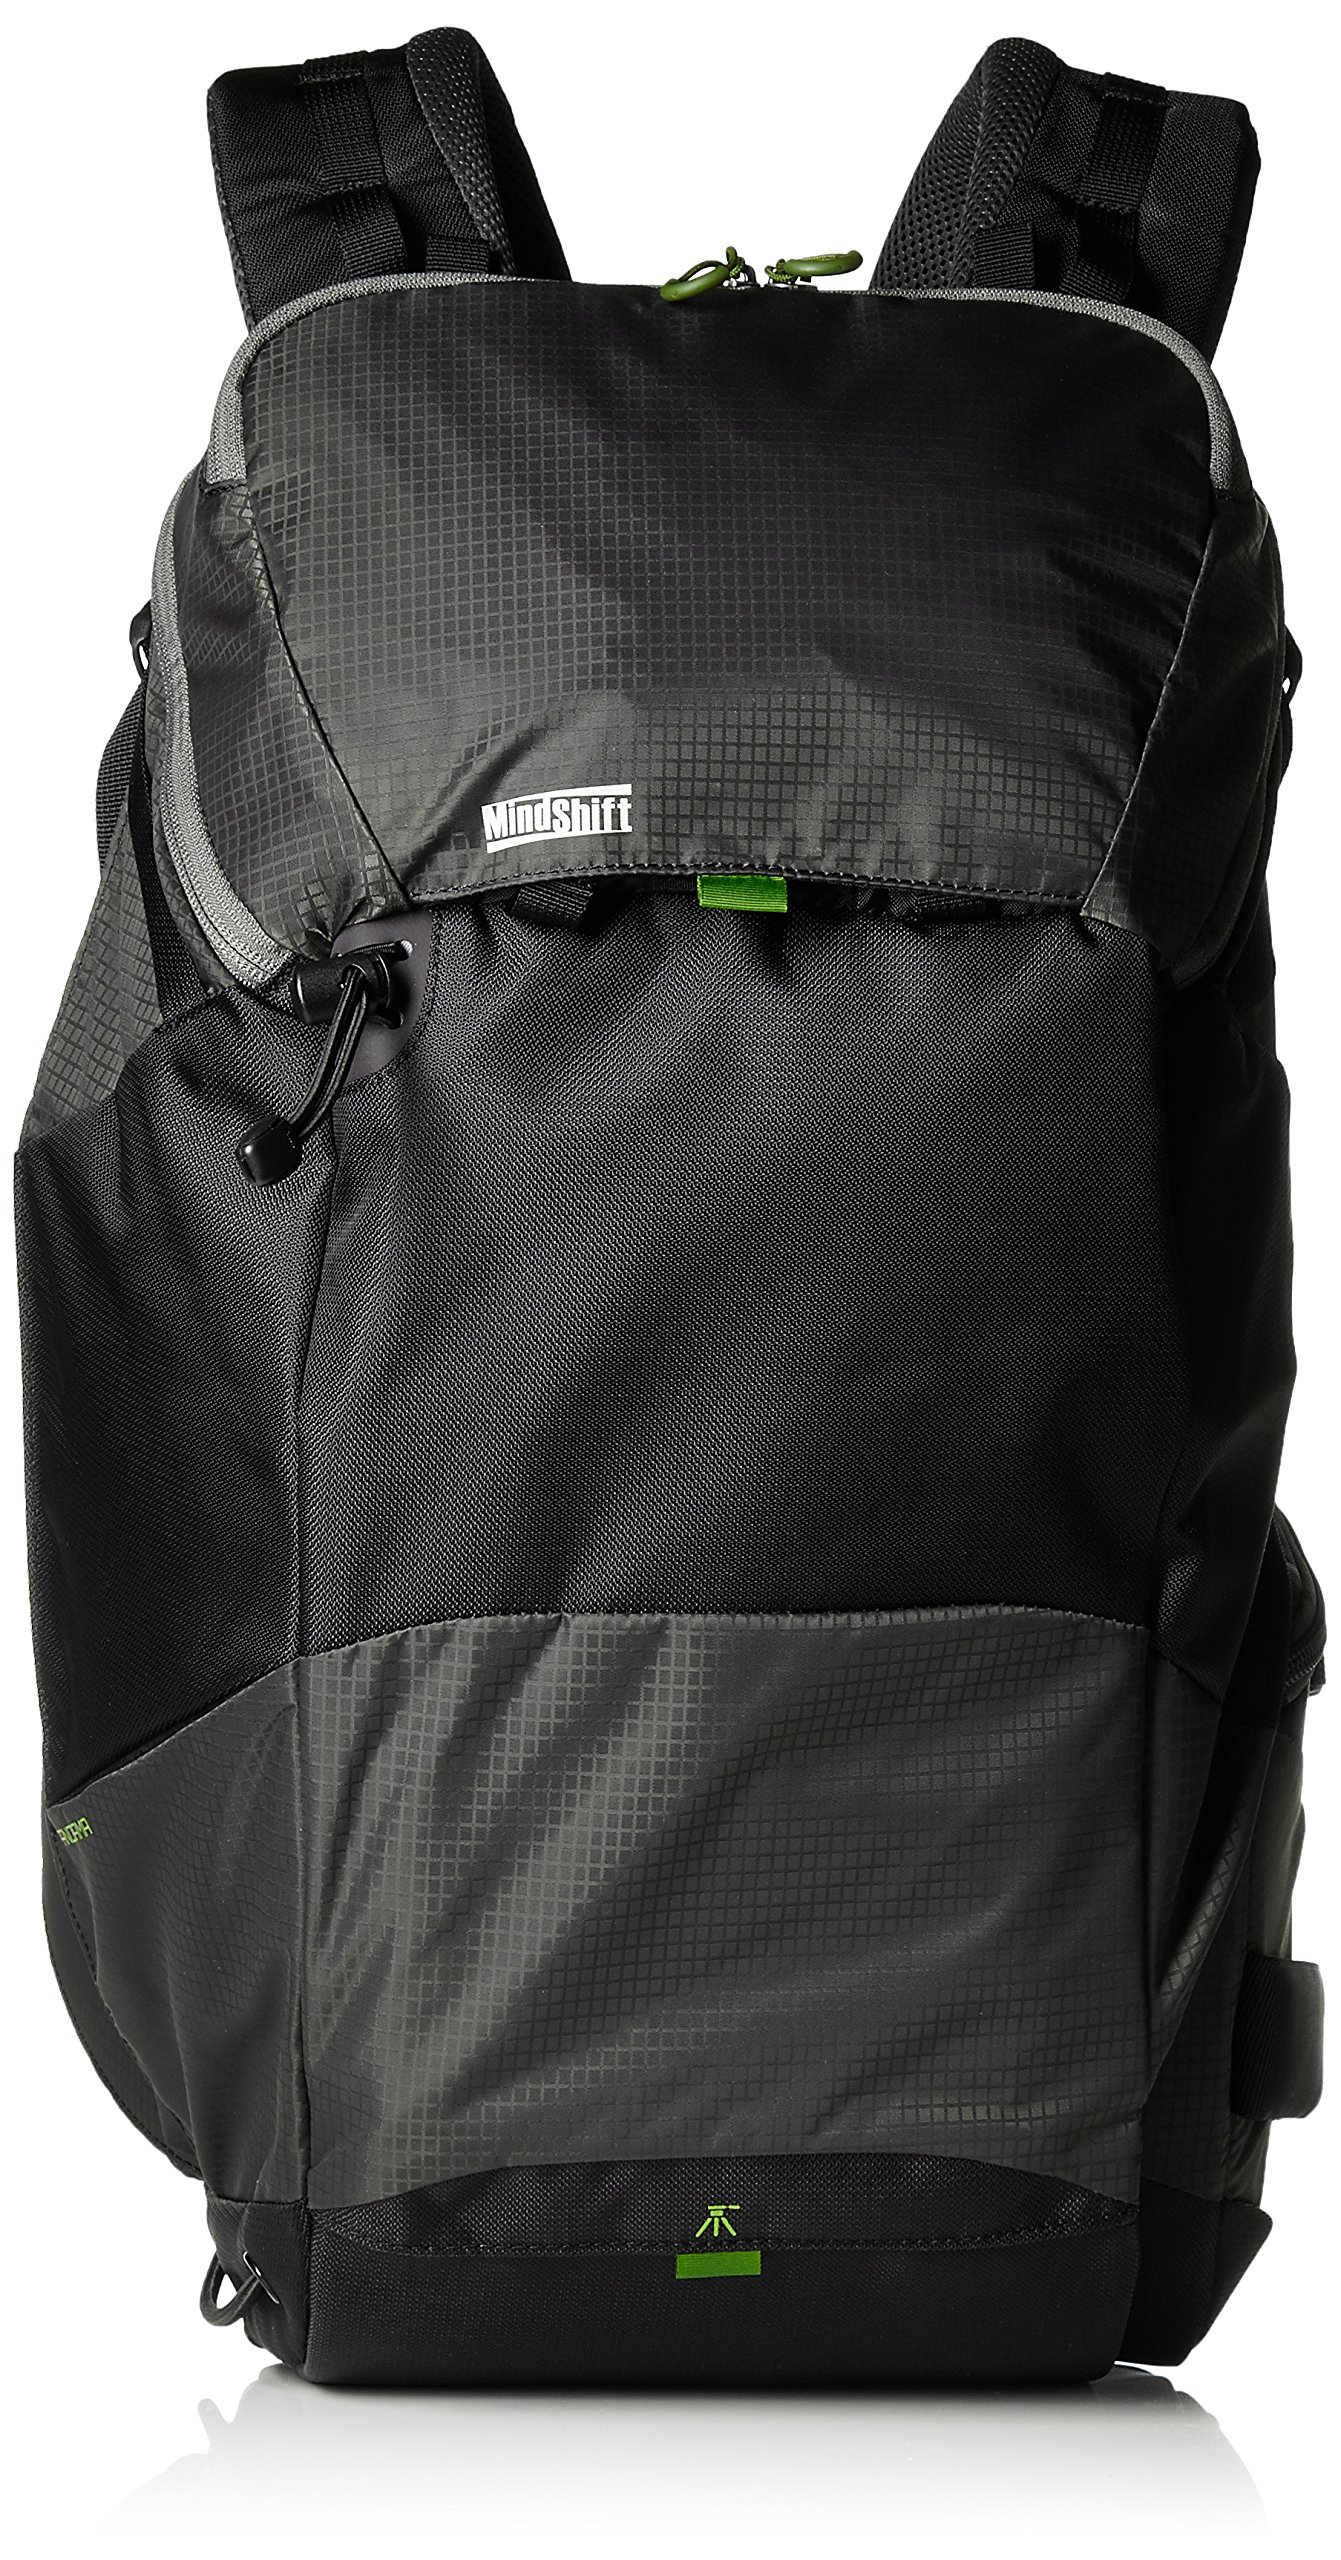 Mind Shift Gear Rotation 180 - Panorama 22L Backpack Waistpack Combo, Charcoal by Mindshift